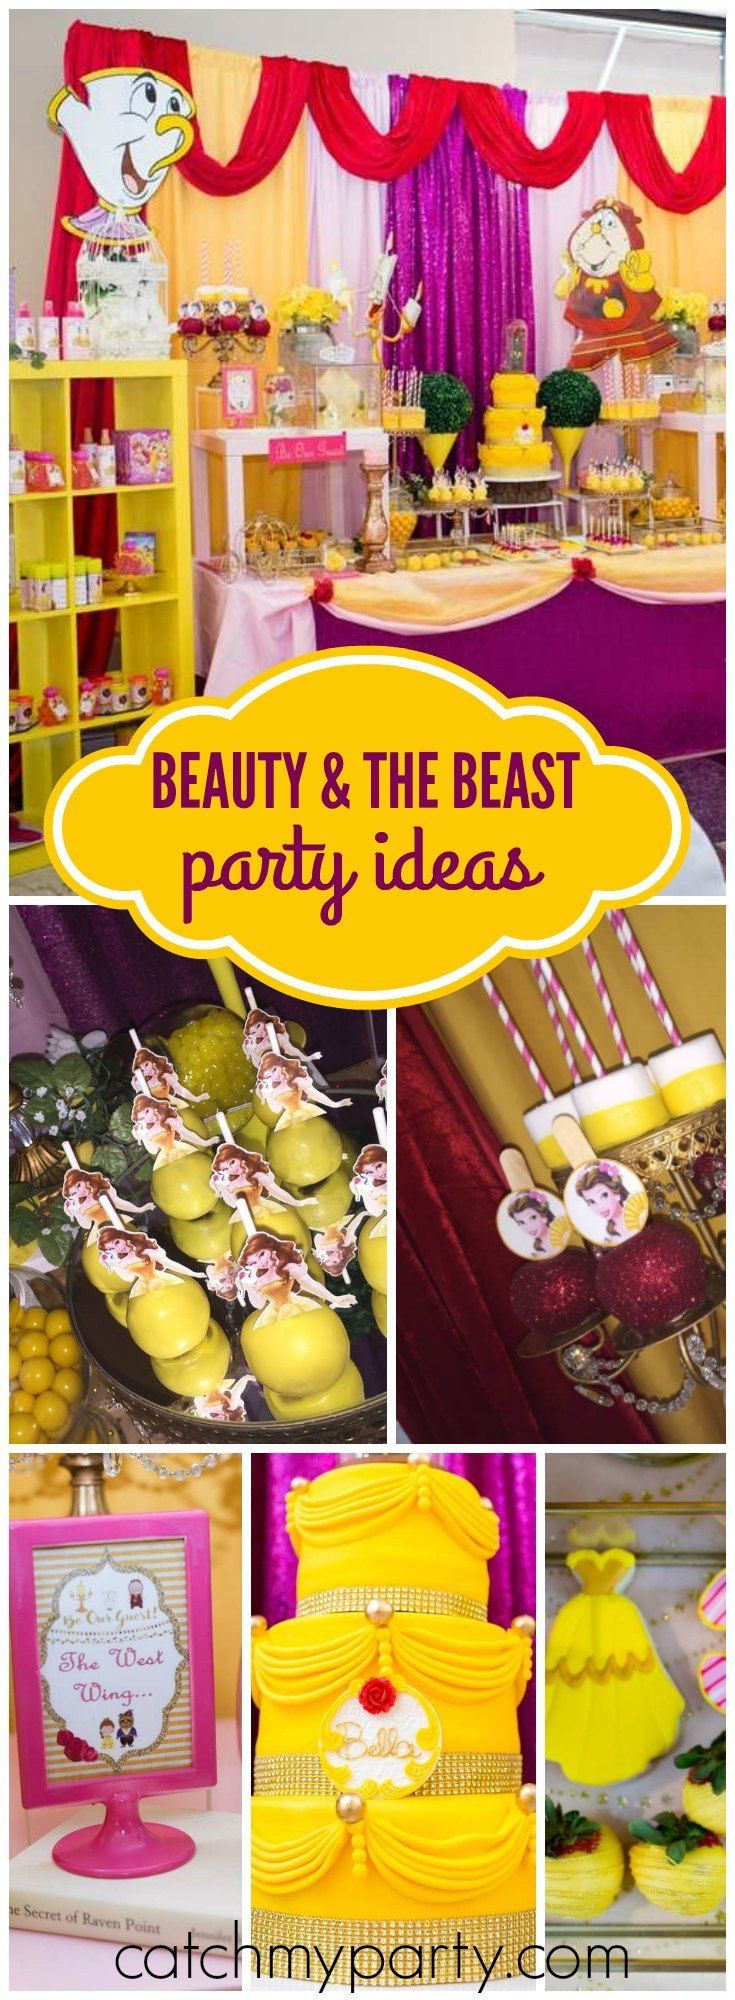 You have to see this beautiful Beauty and the Beast birthday! See more party ideas at Catchmyparty.com!